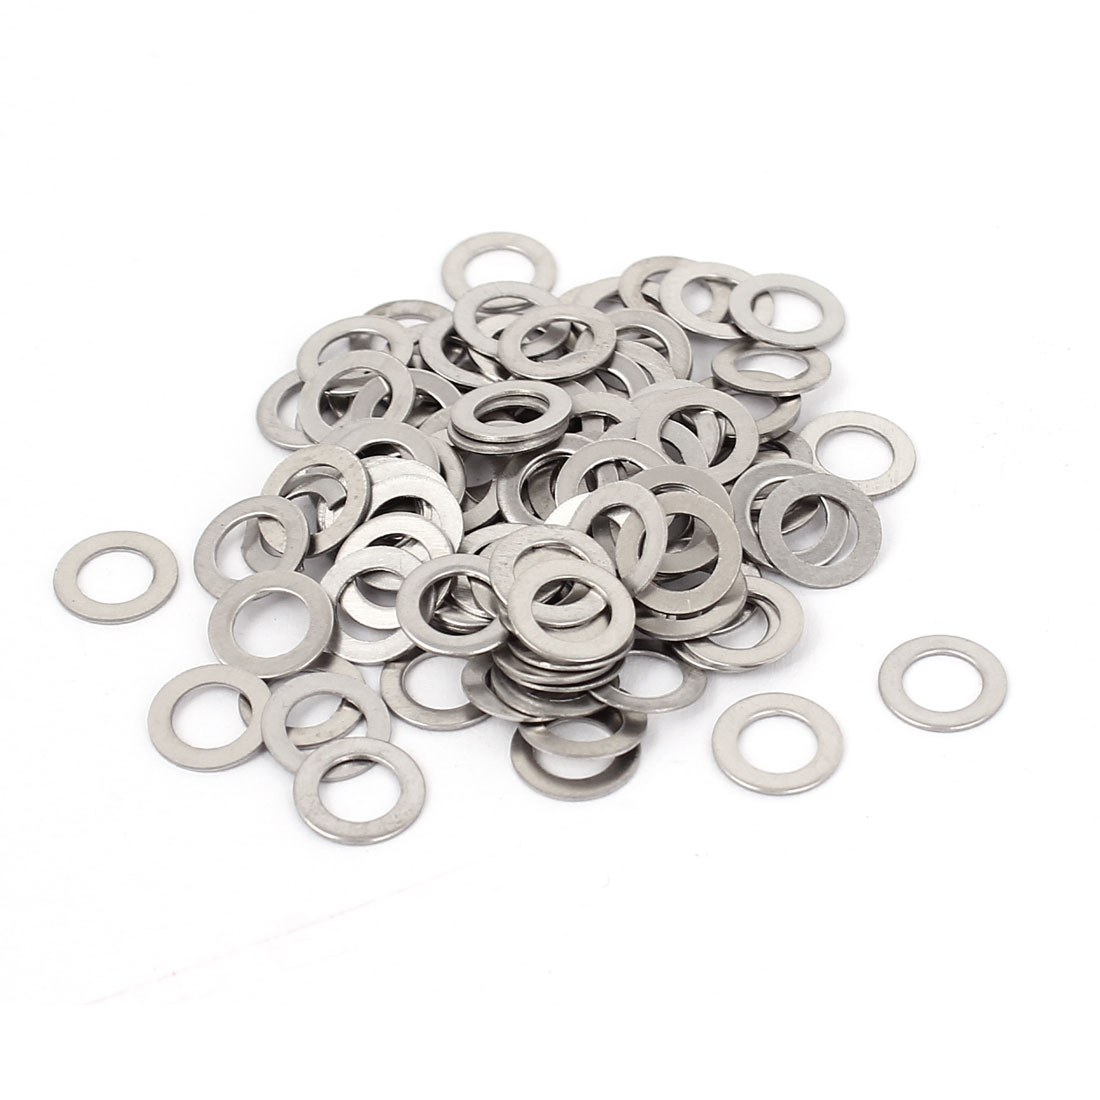 100Pcs M5x9mmx0.5mm Stainless Steel Metric Round Flat Washer for Bolt Screw